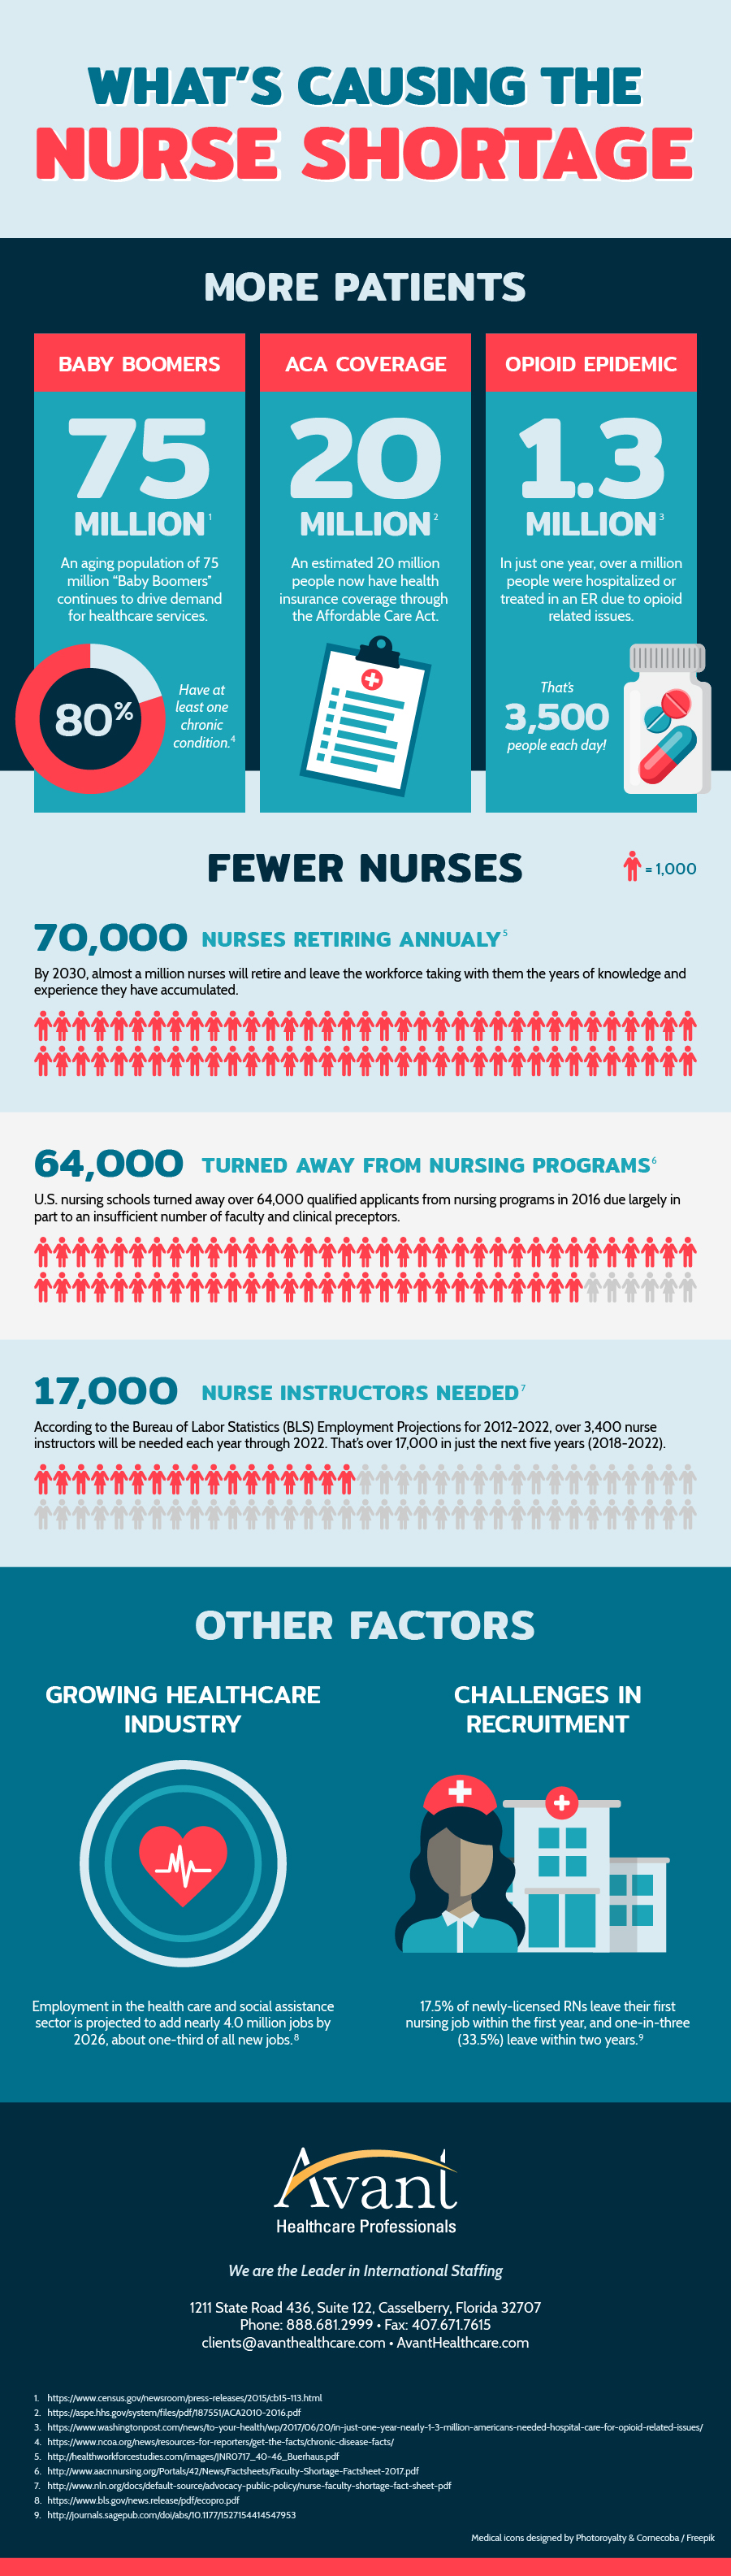 Nursing Shortage Infographic